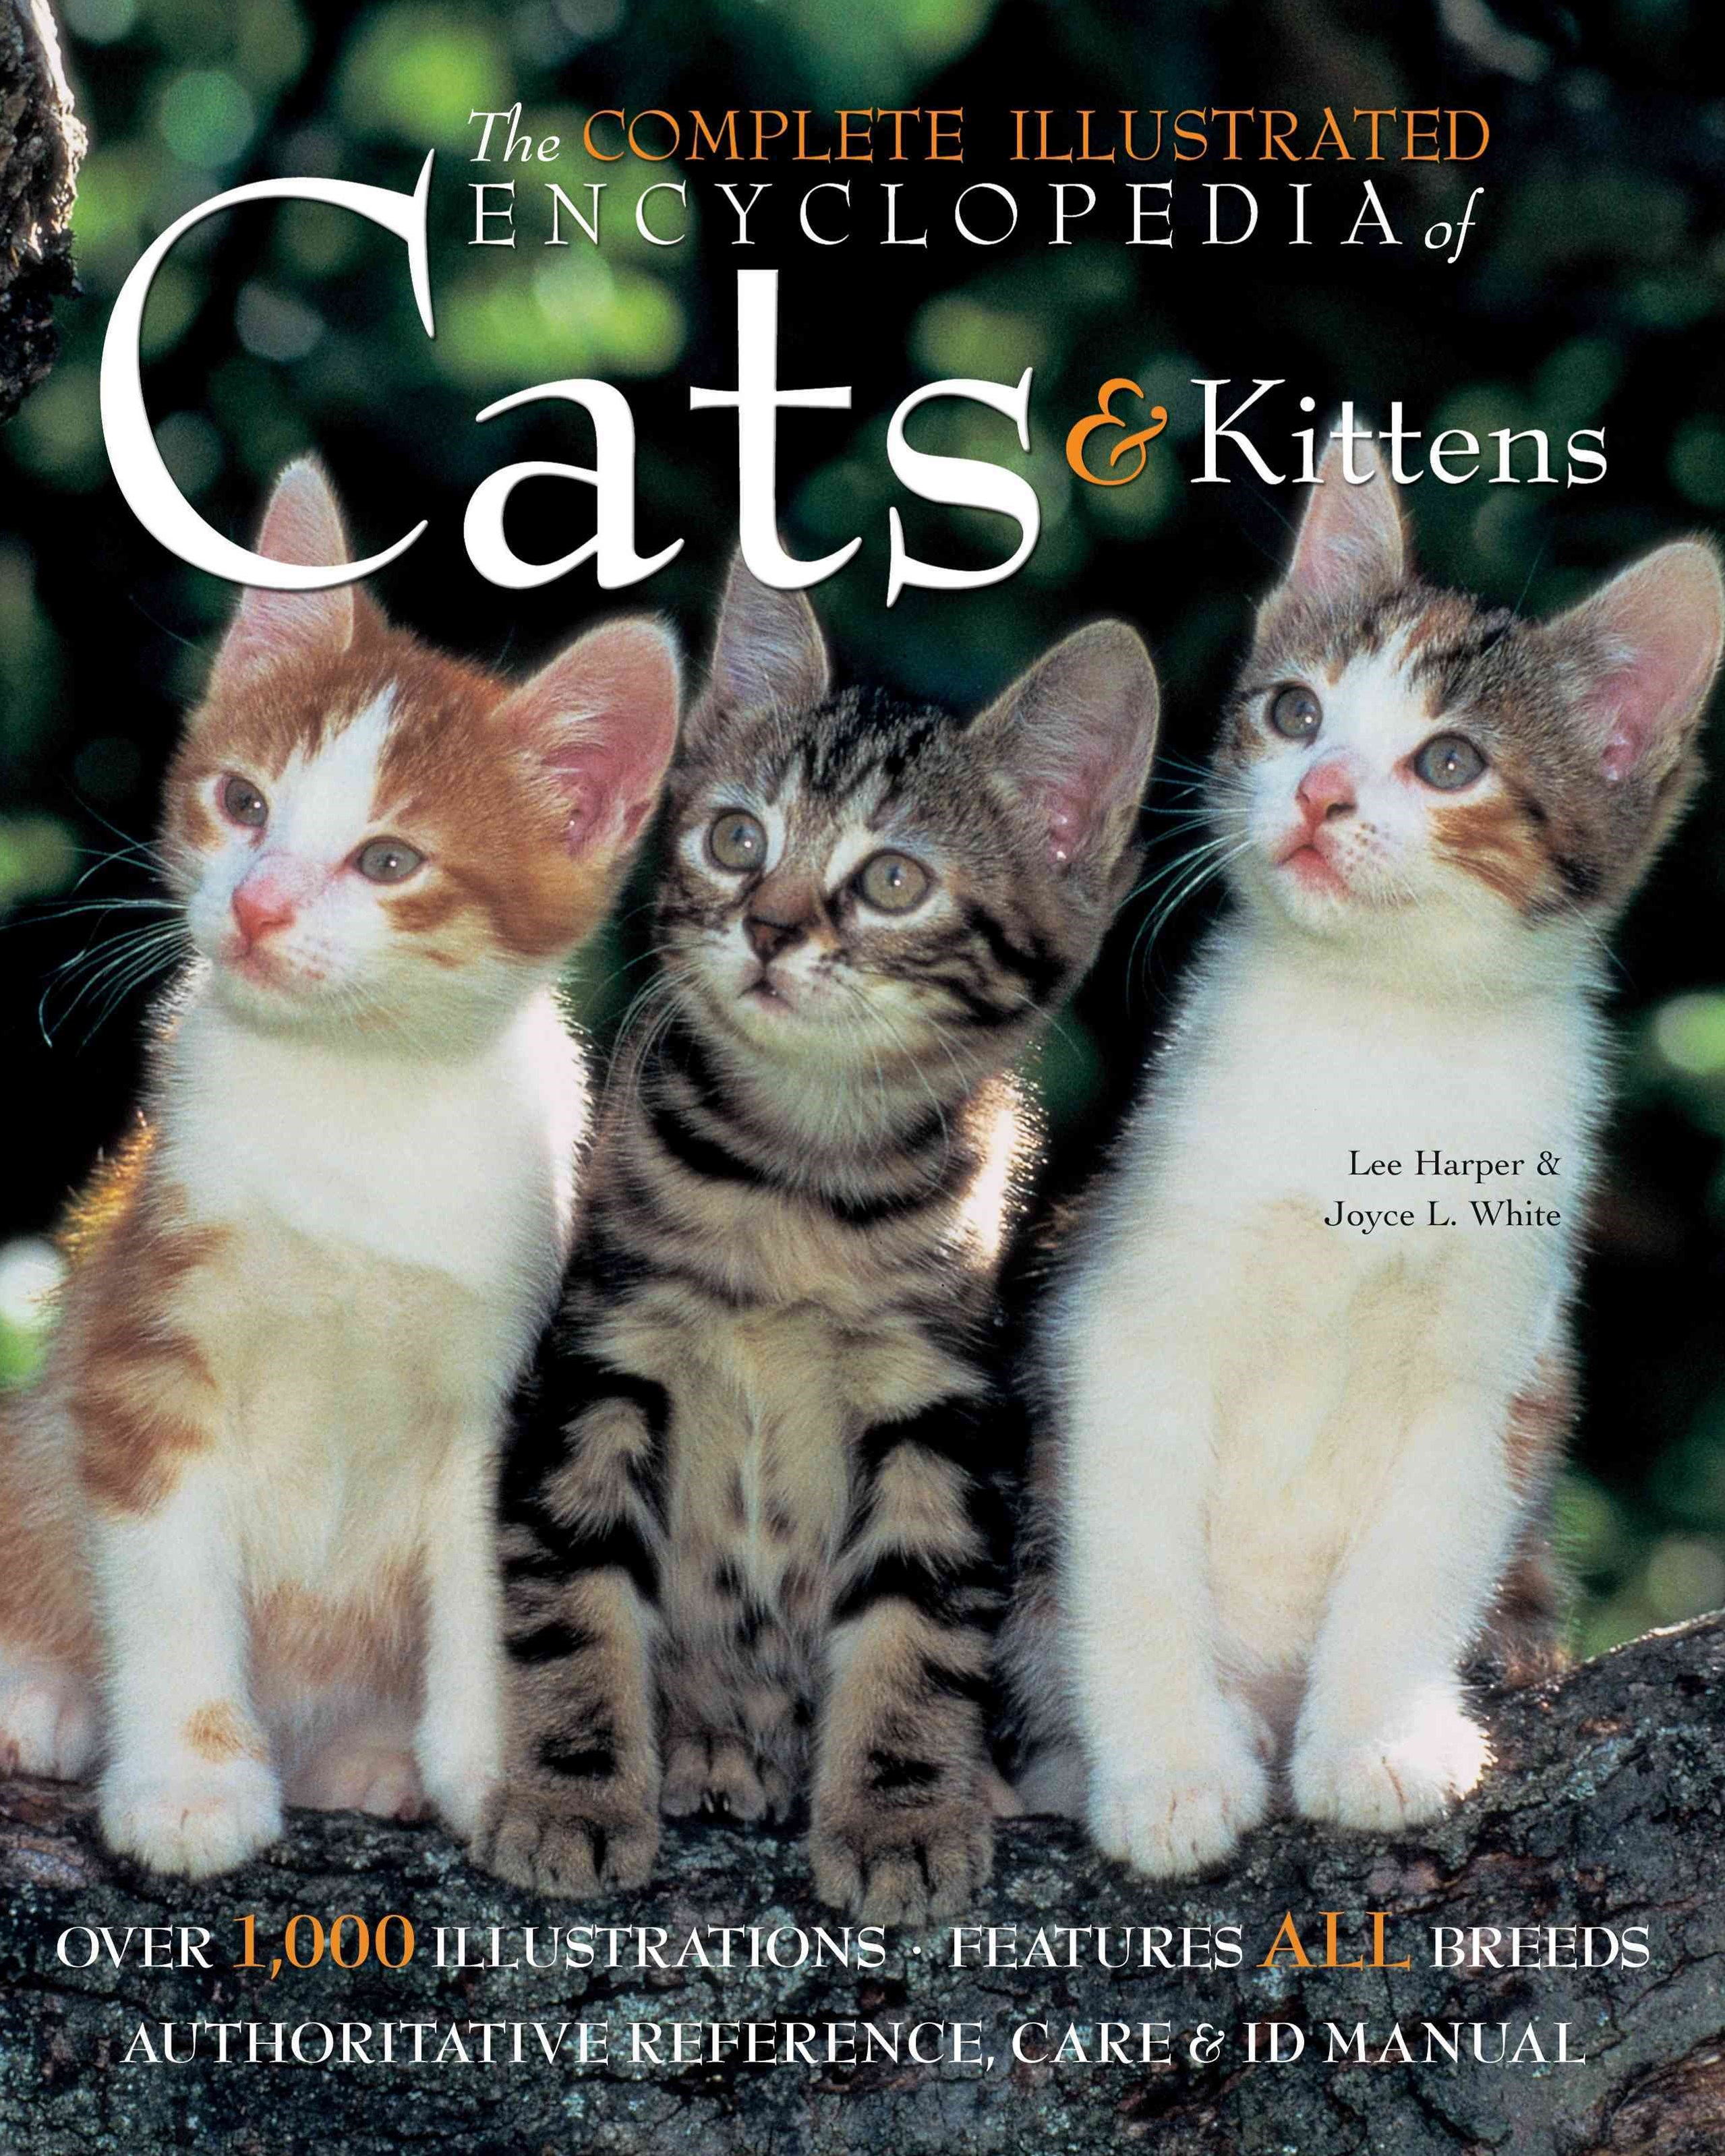 Complete Illustrated Encyclopedia of Cats and Kittens